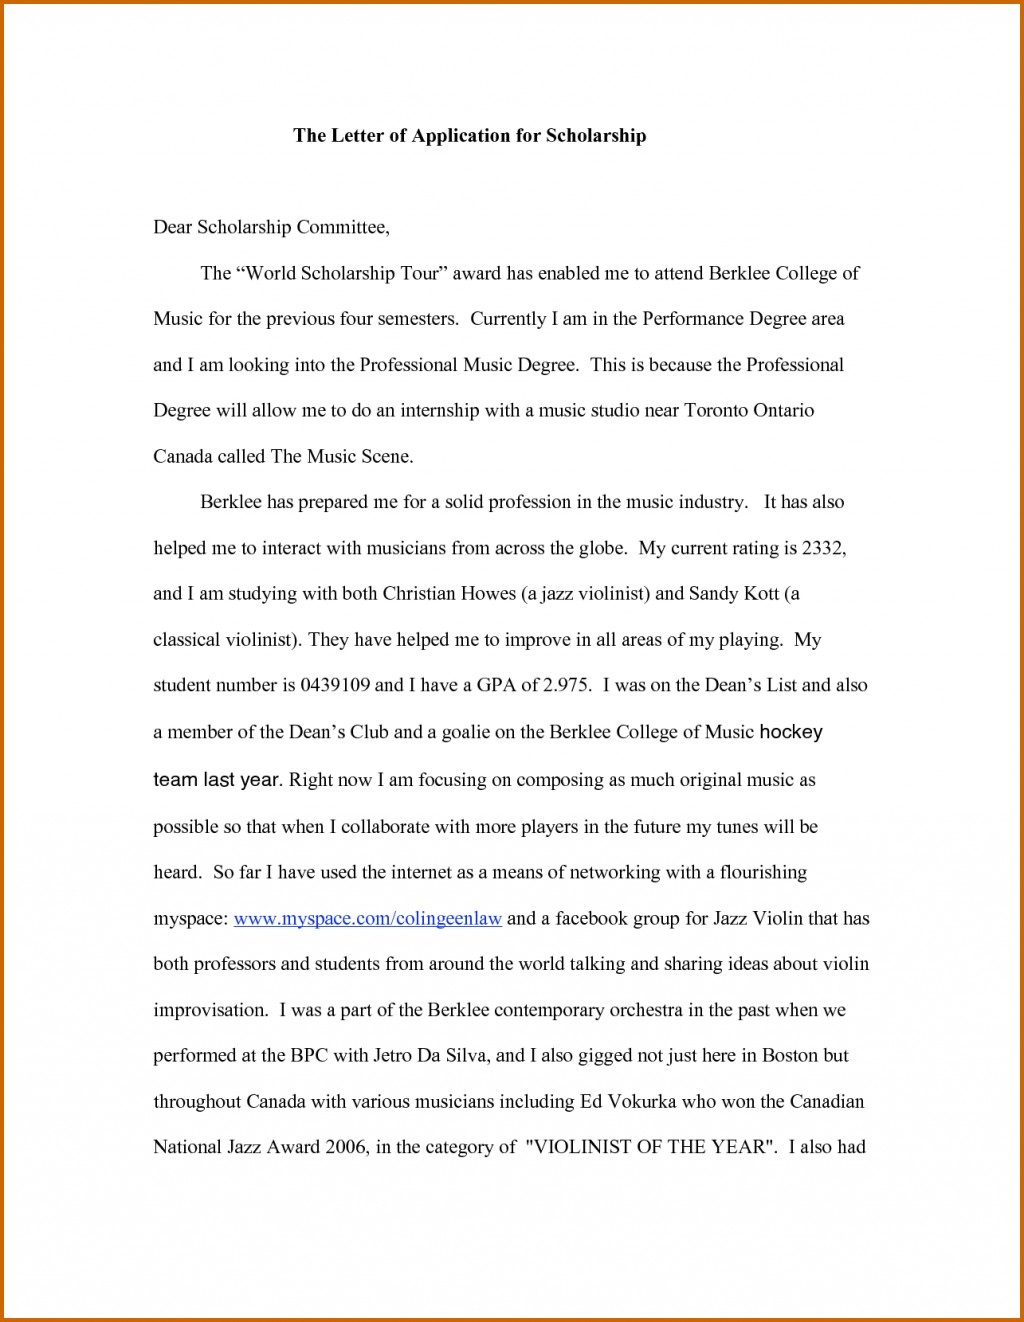 009 Essay Example How To Writepplication For Scholarship What Awesome Write A That Stands Out About Your Career Goals Financial Need Large